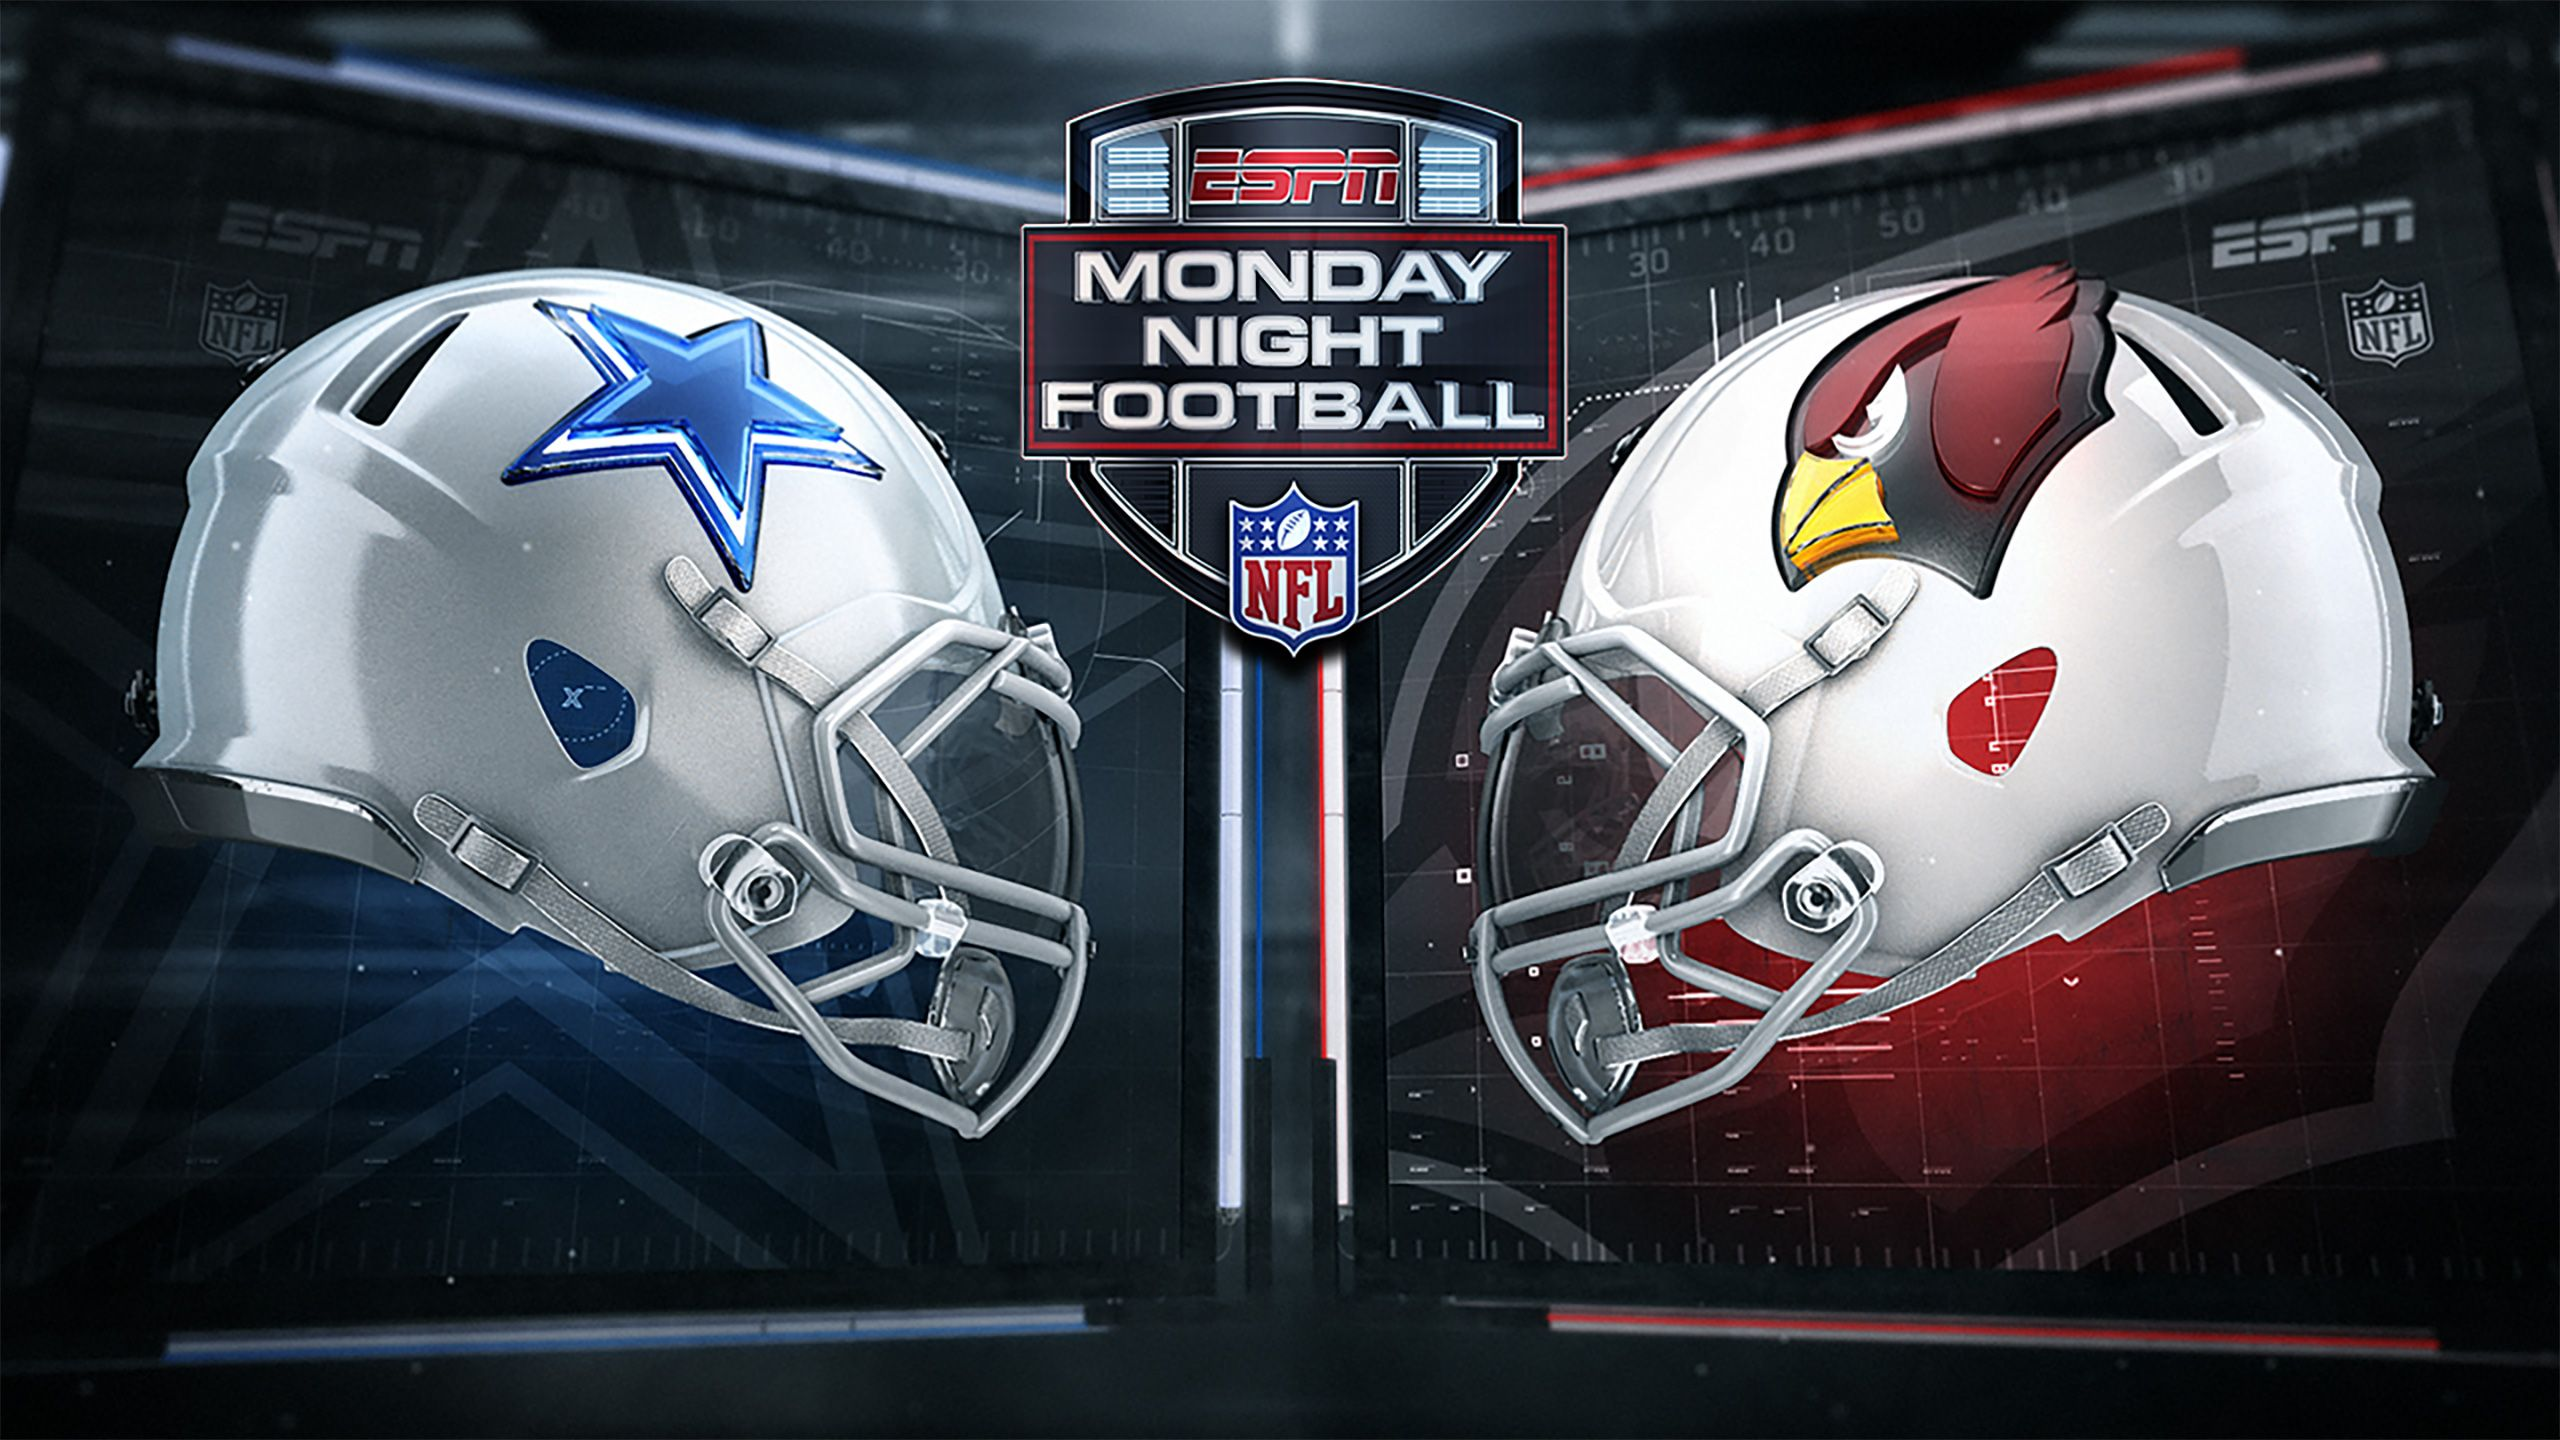 Dallas Cowboys vs. Arizona Cardinals